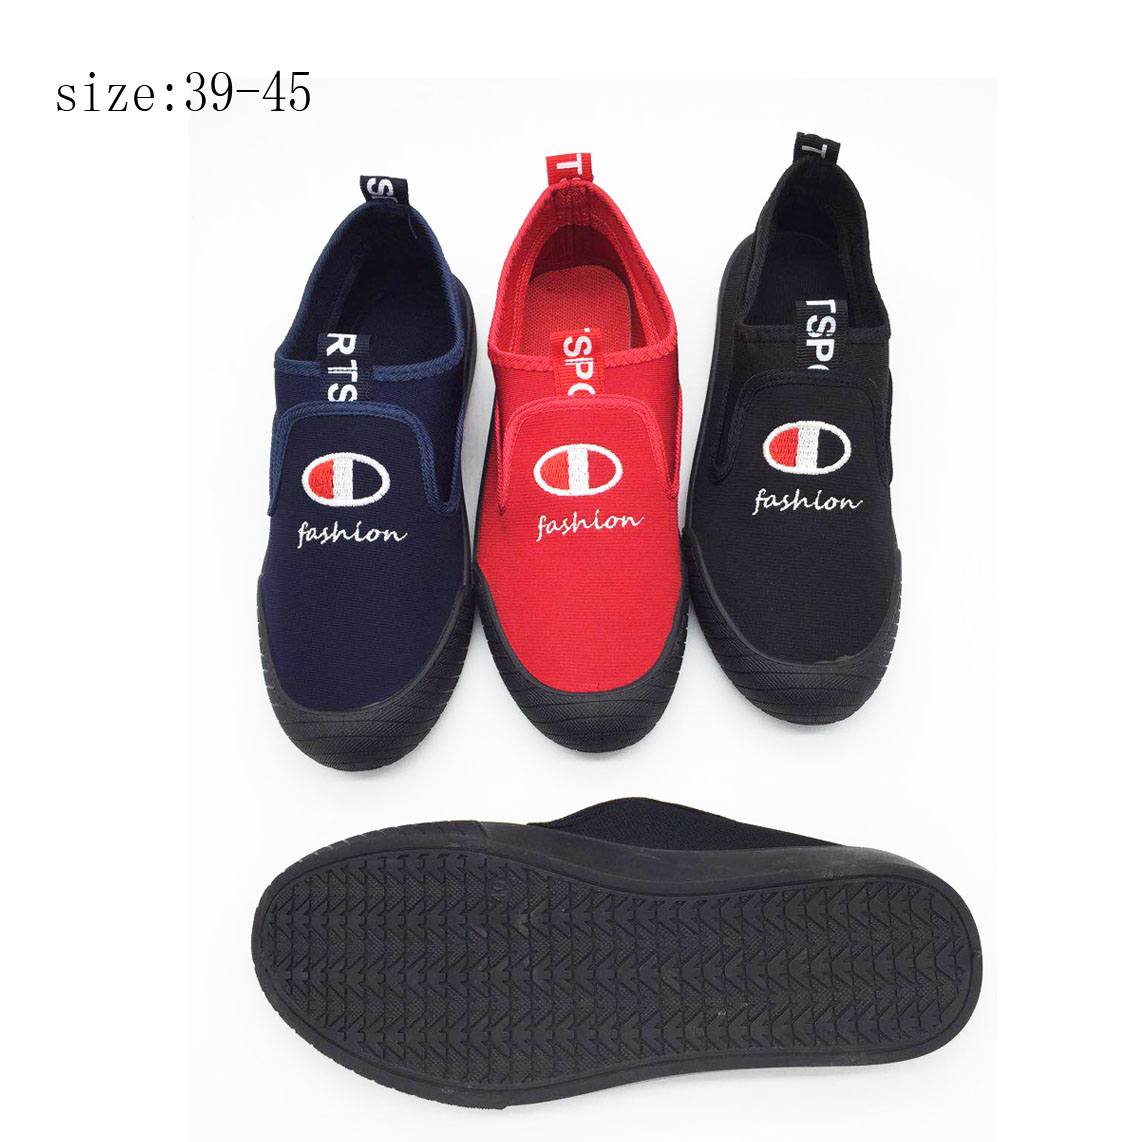 New style men casual shoes canvas shoes footwear (ZL19517-4)...